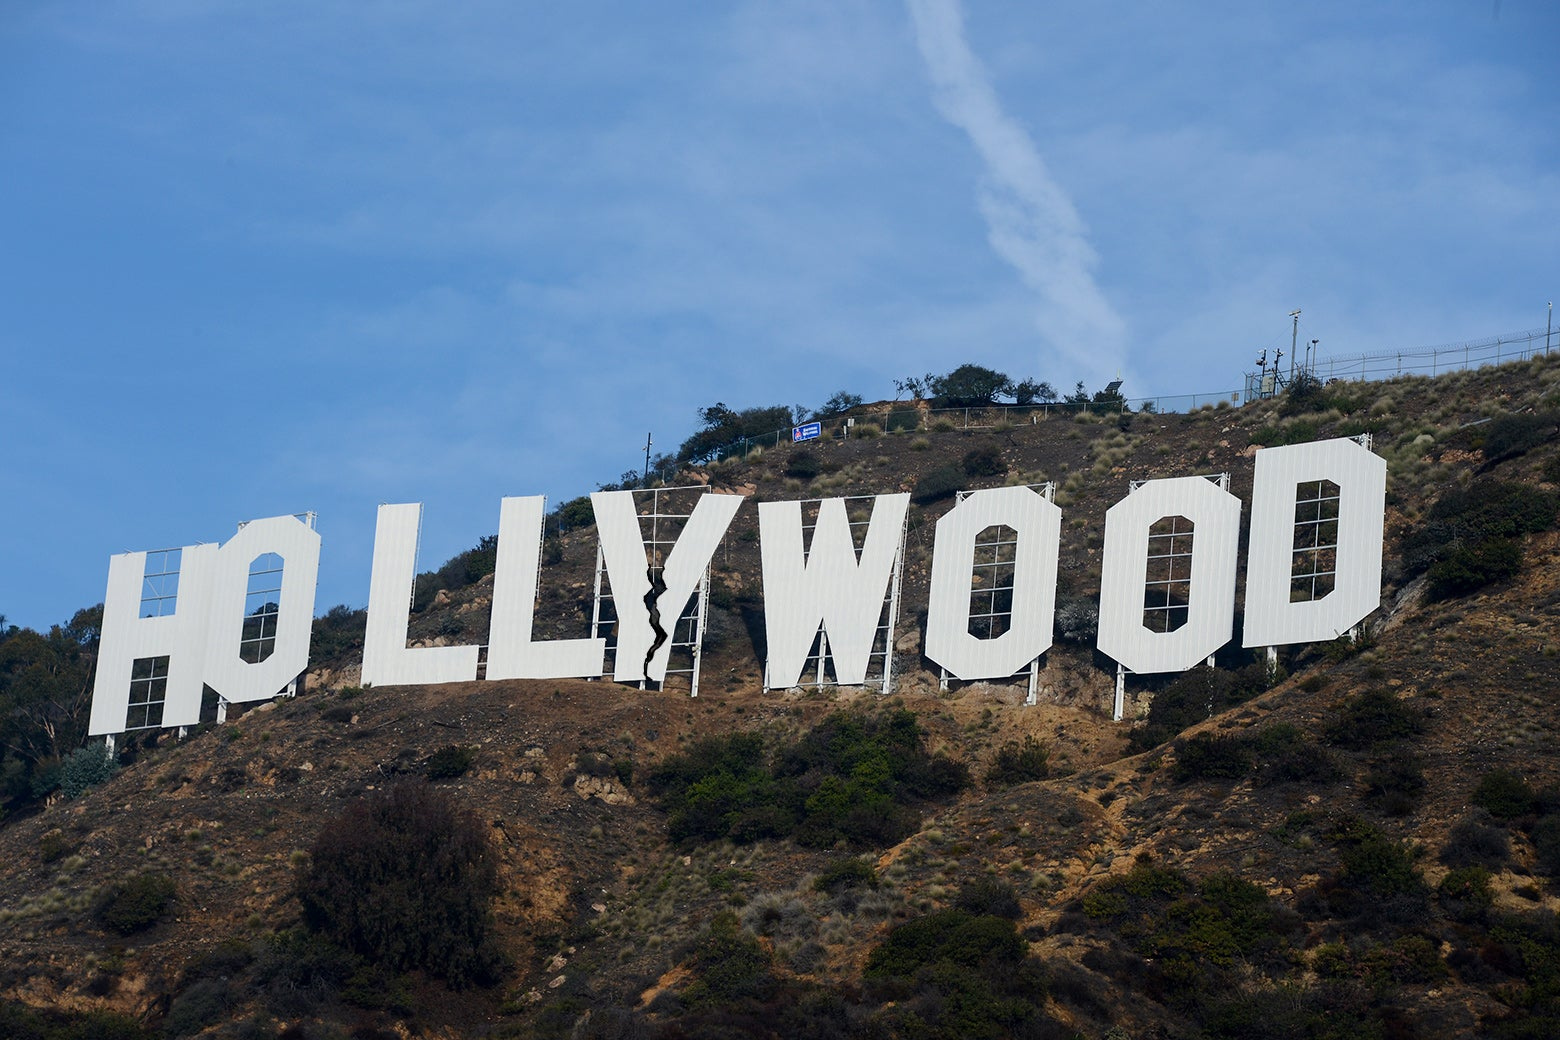 slate.com - Matthew Dessem - Why Are Hollywood's Writers Fighting With Their Agents?